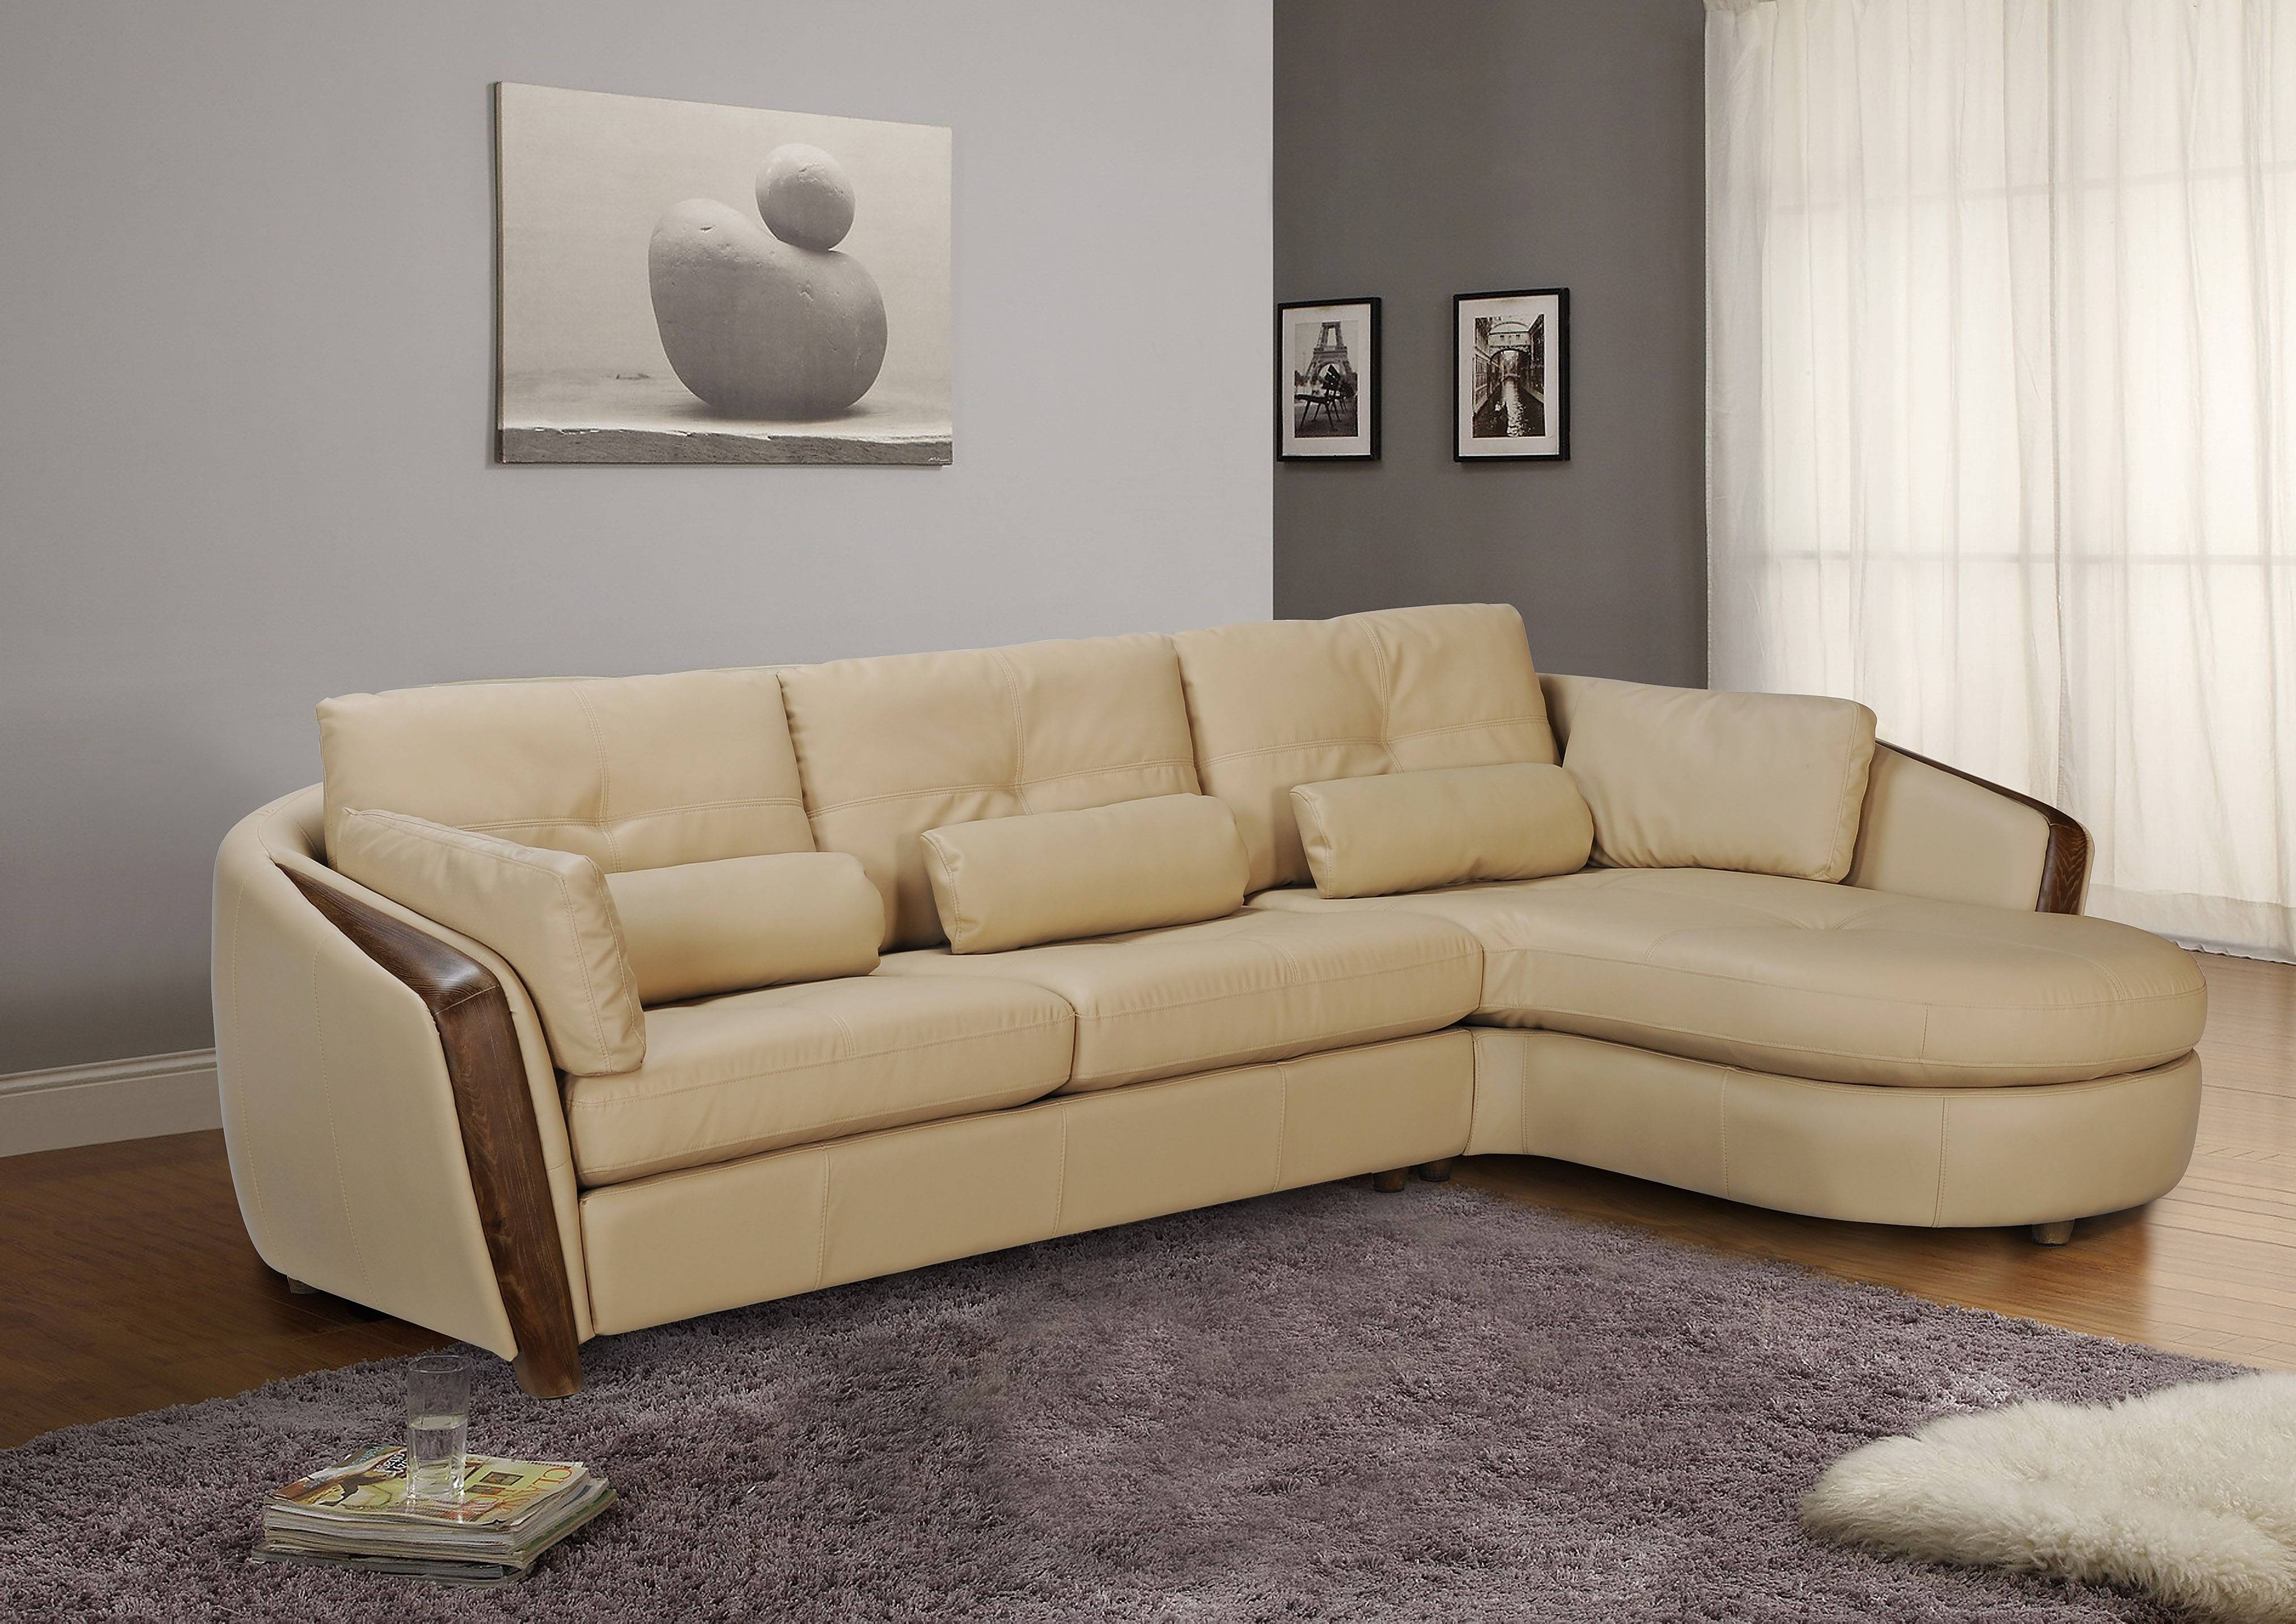 Furniture Manufacturers Ontario Taupe Bonded Leather Sectional Sofa With Ash Wood Accent